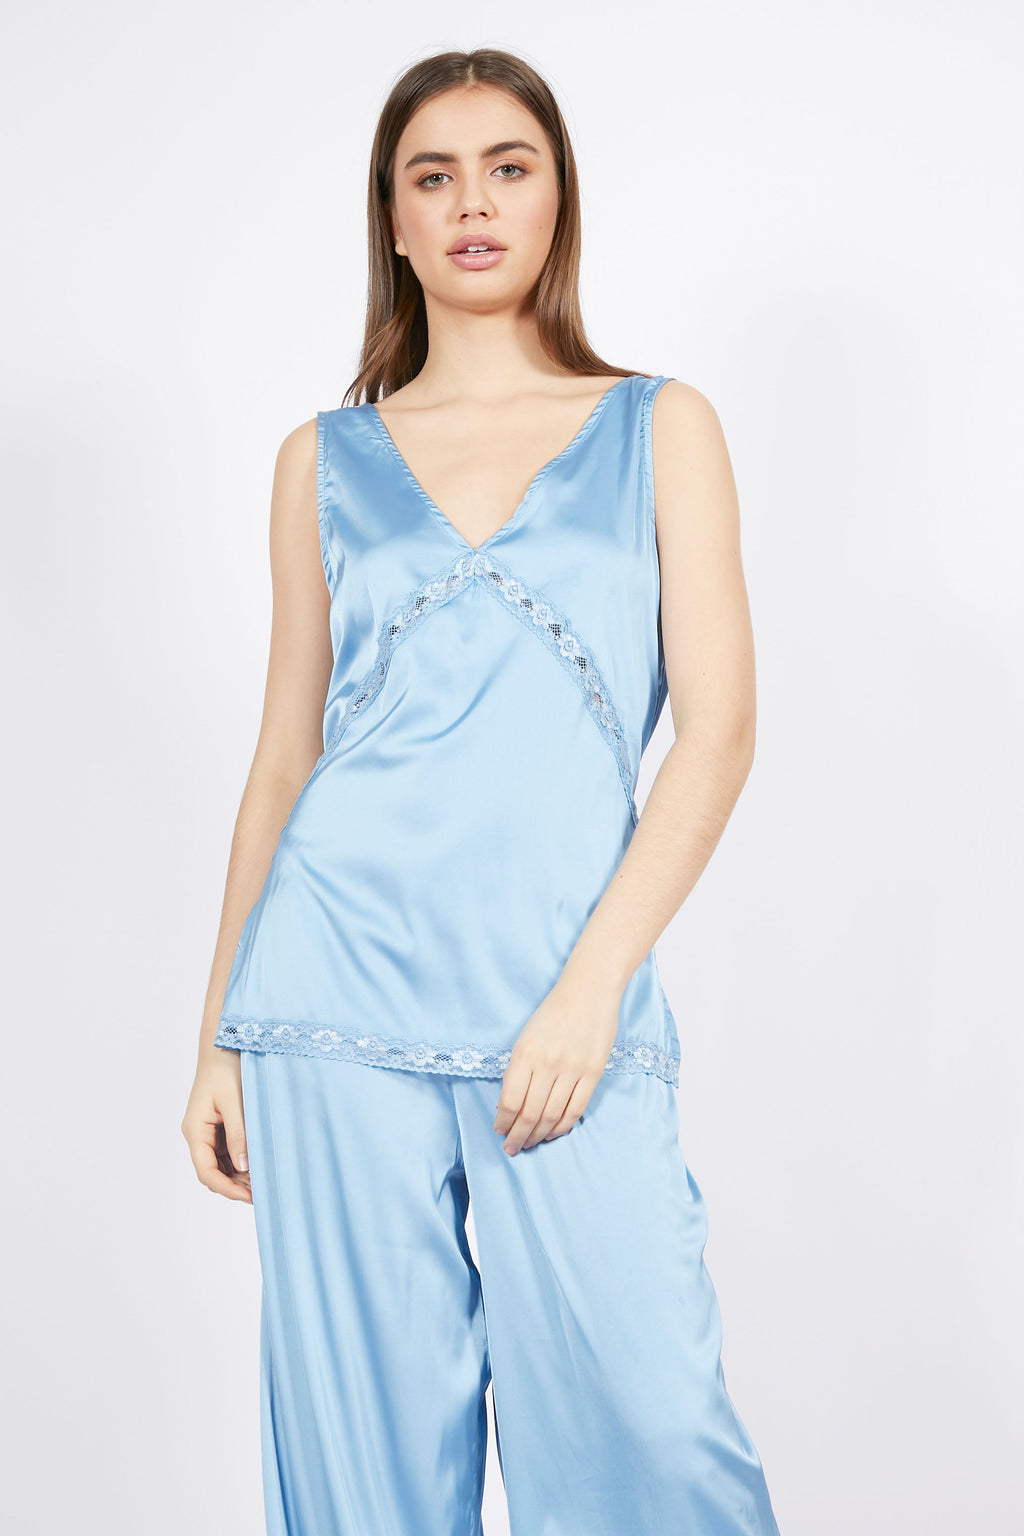 Vintage Inspired Light Blue Satin Top